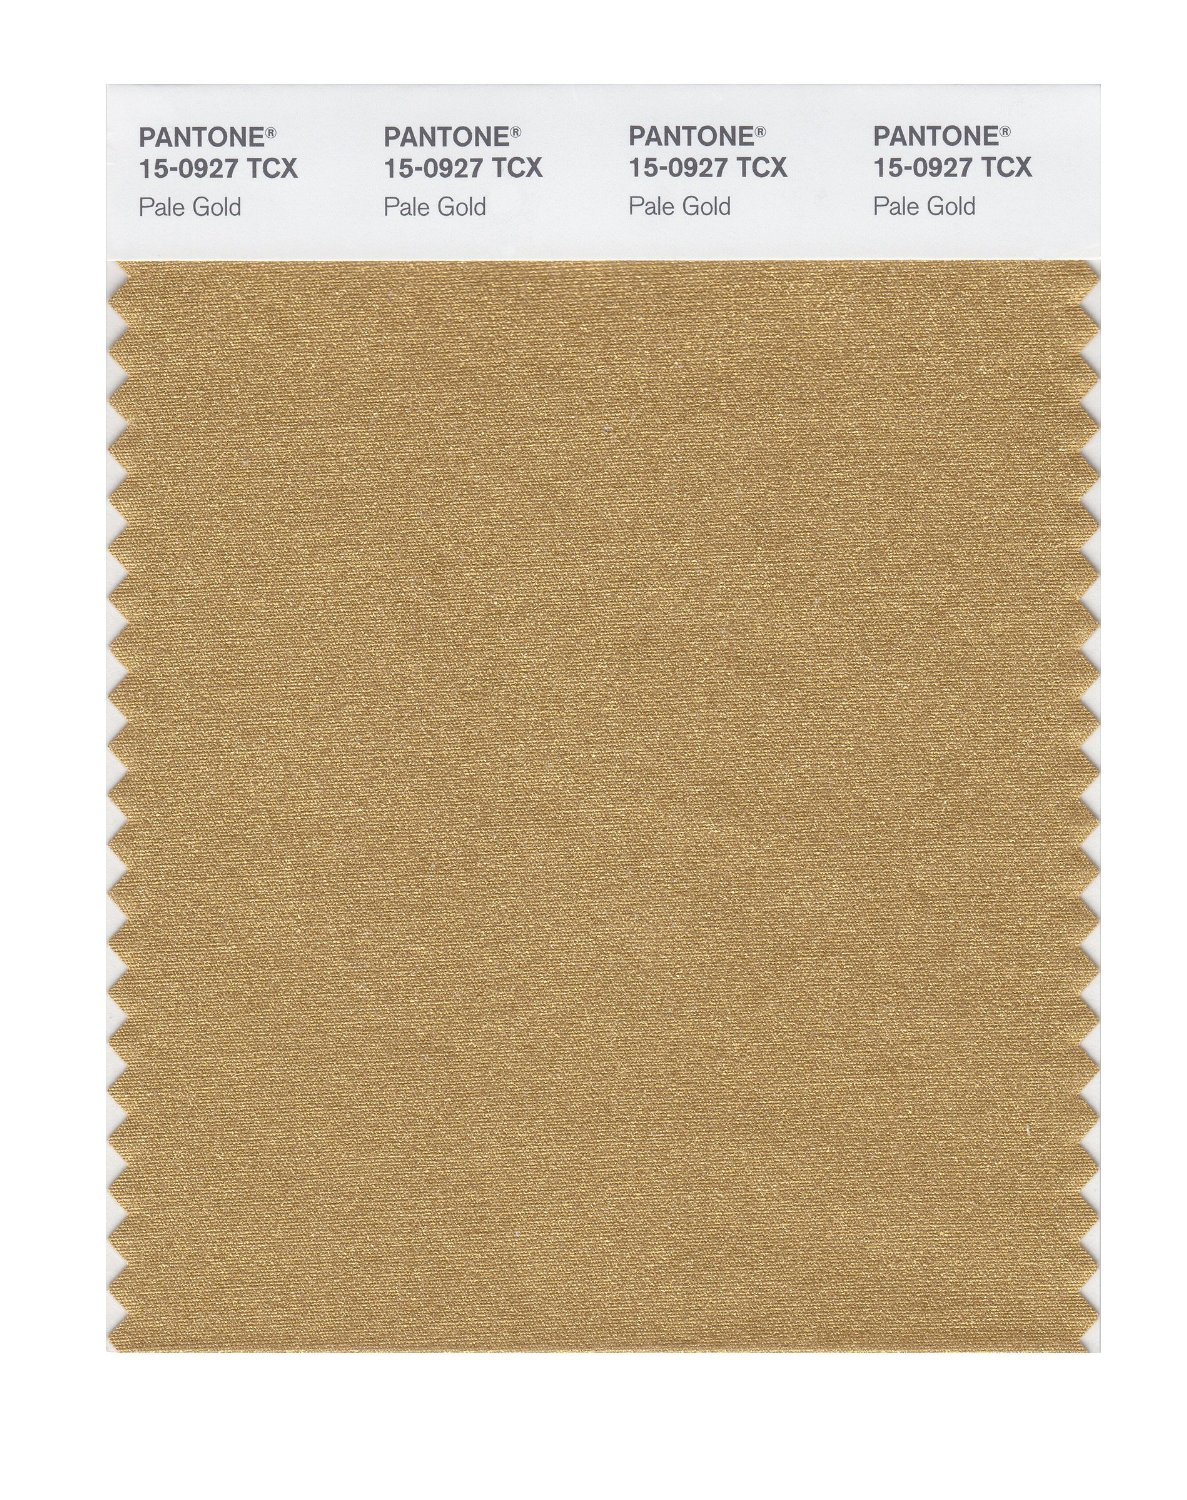 Pantone Smart Swatch 15-0927 Pale Gold